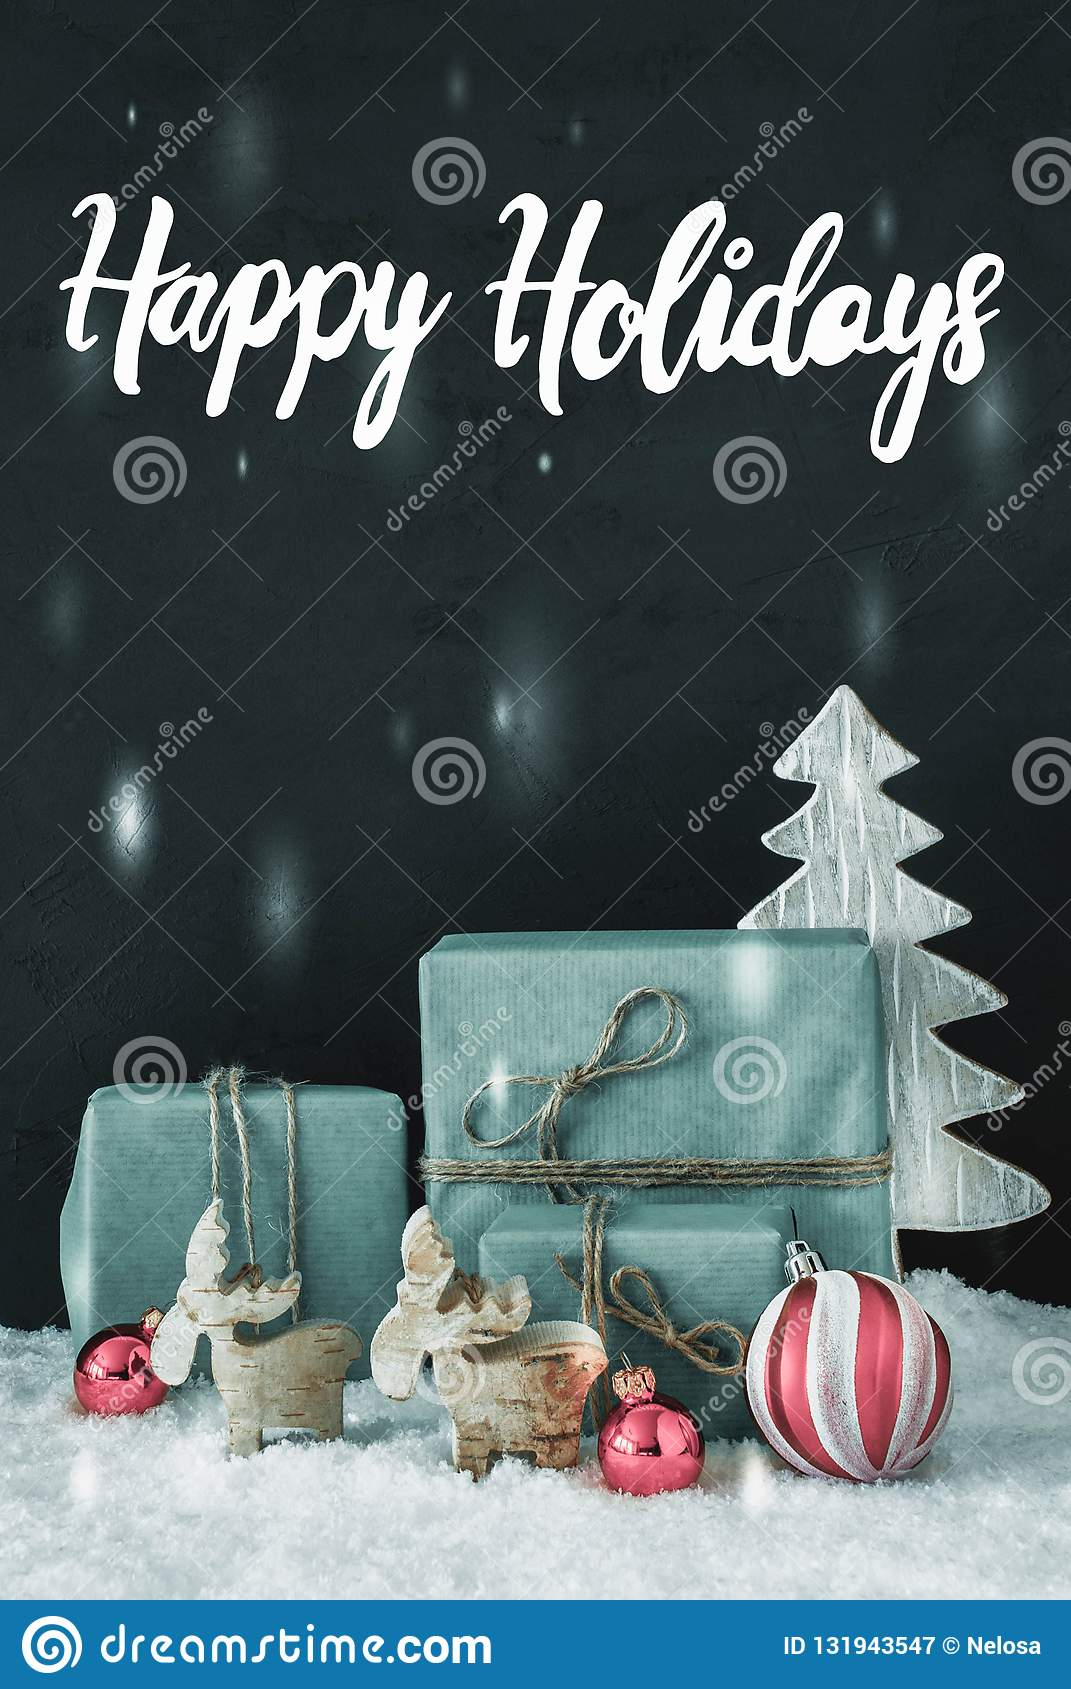 Vertical Decoration, Calligraphy Happy Holidays, Frosty Look